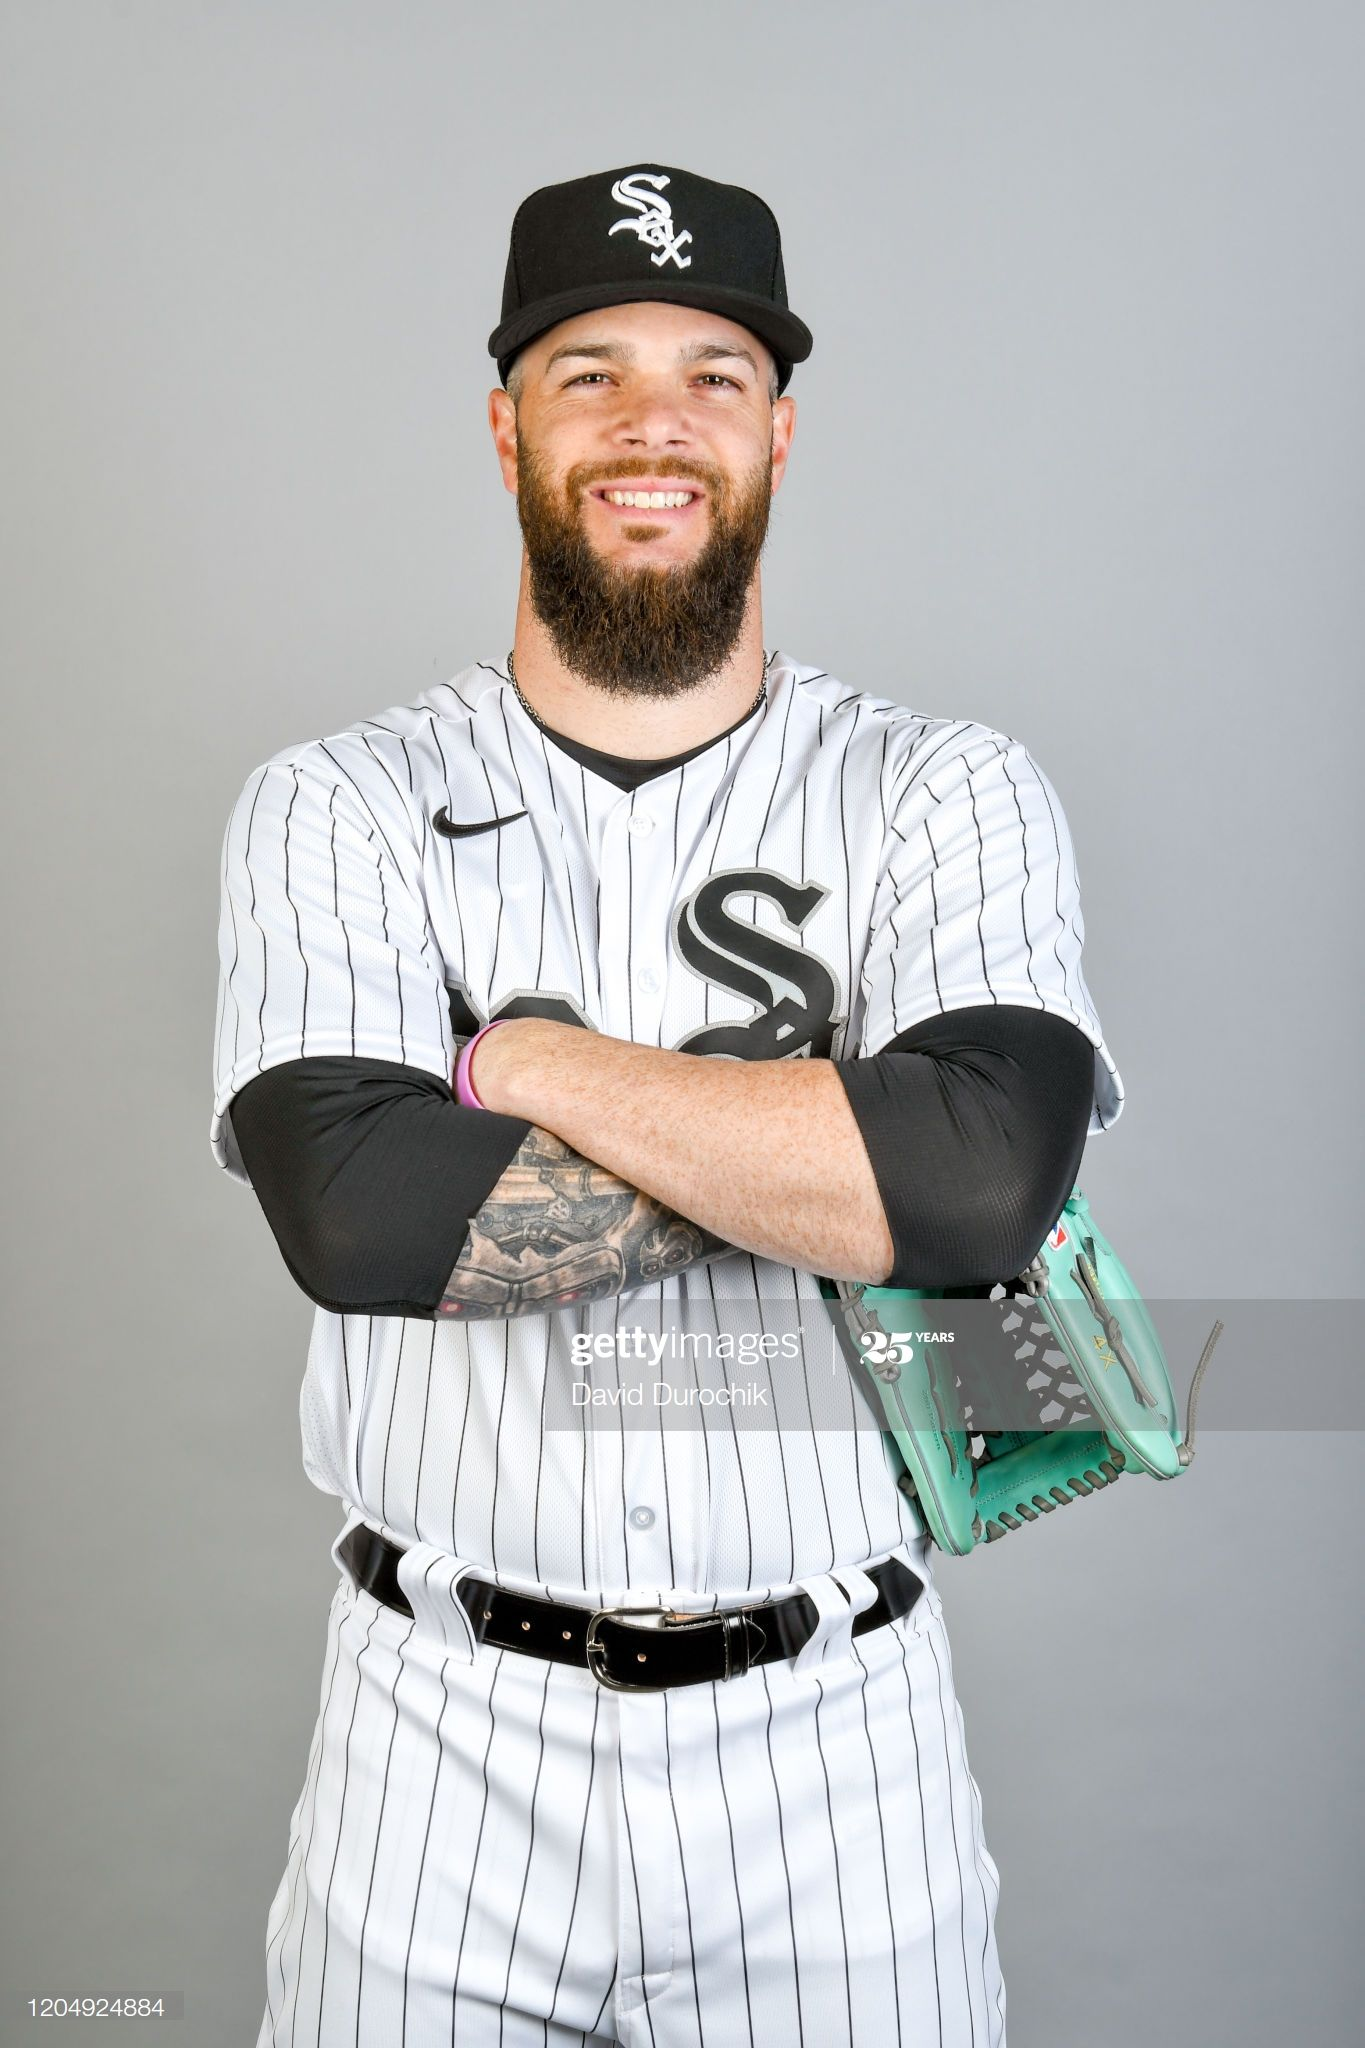 Dallas Keuchel Of The Chicago White Sox Poses During Photo Day On In 2020 Chicago White Sox Dallas Keuchel White Sock